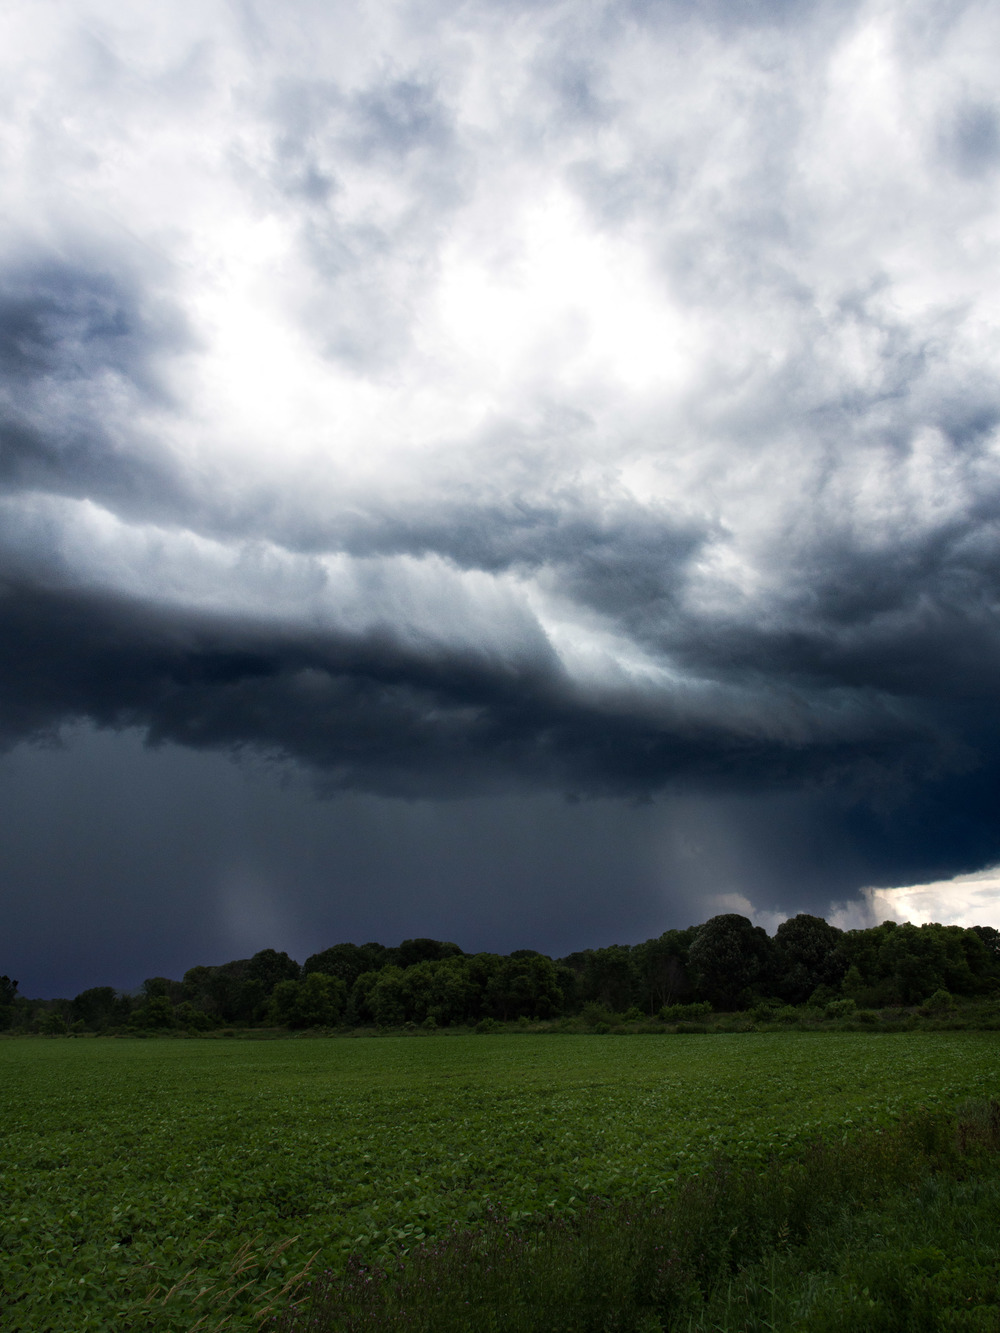 One of many storms I chased in 2013